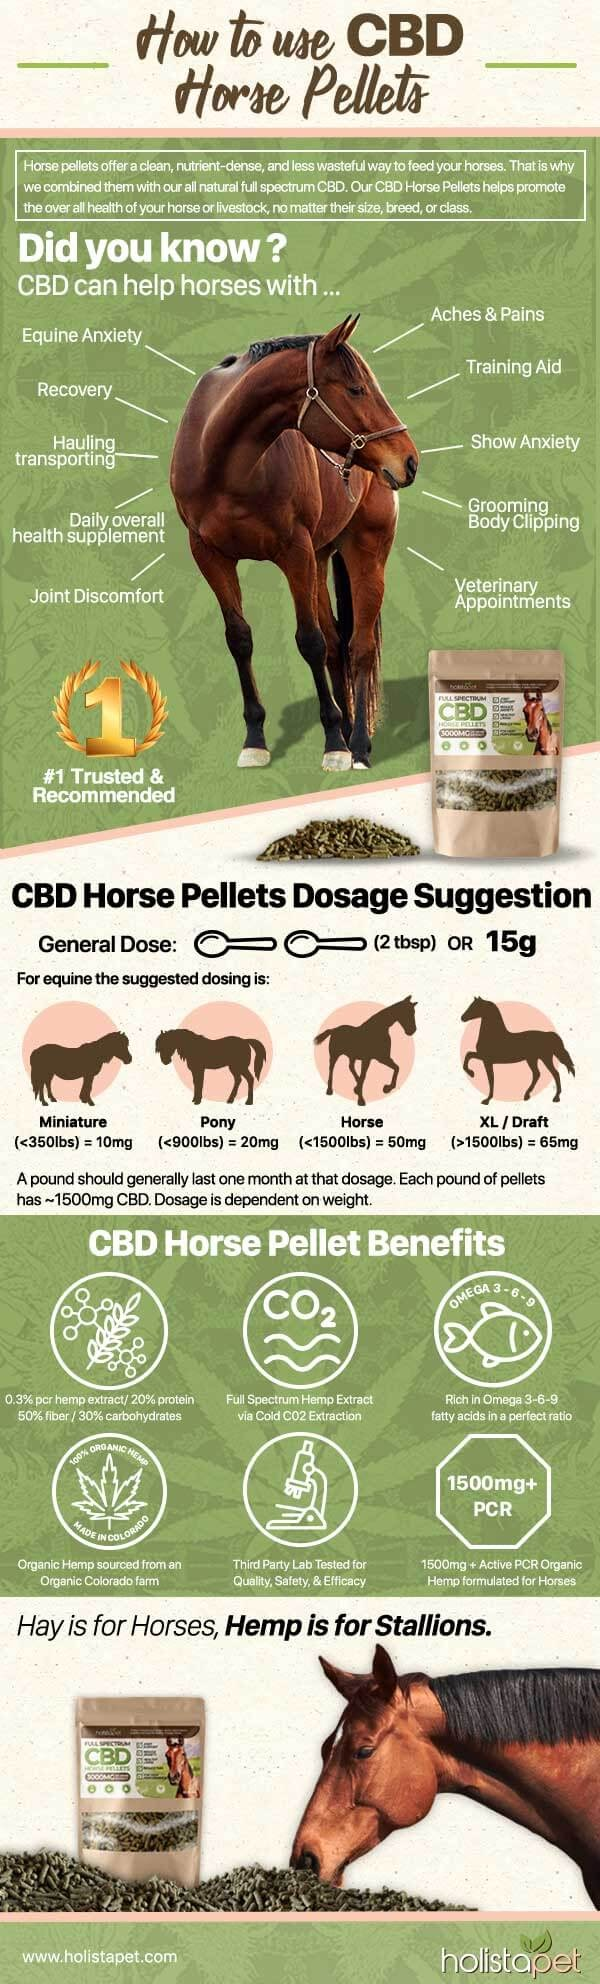 CBD Pellets for Horses - 3000mg | Hemp Pellets for Horses #infographic